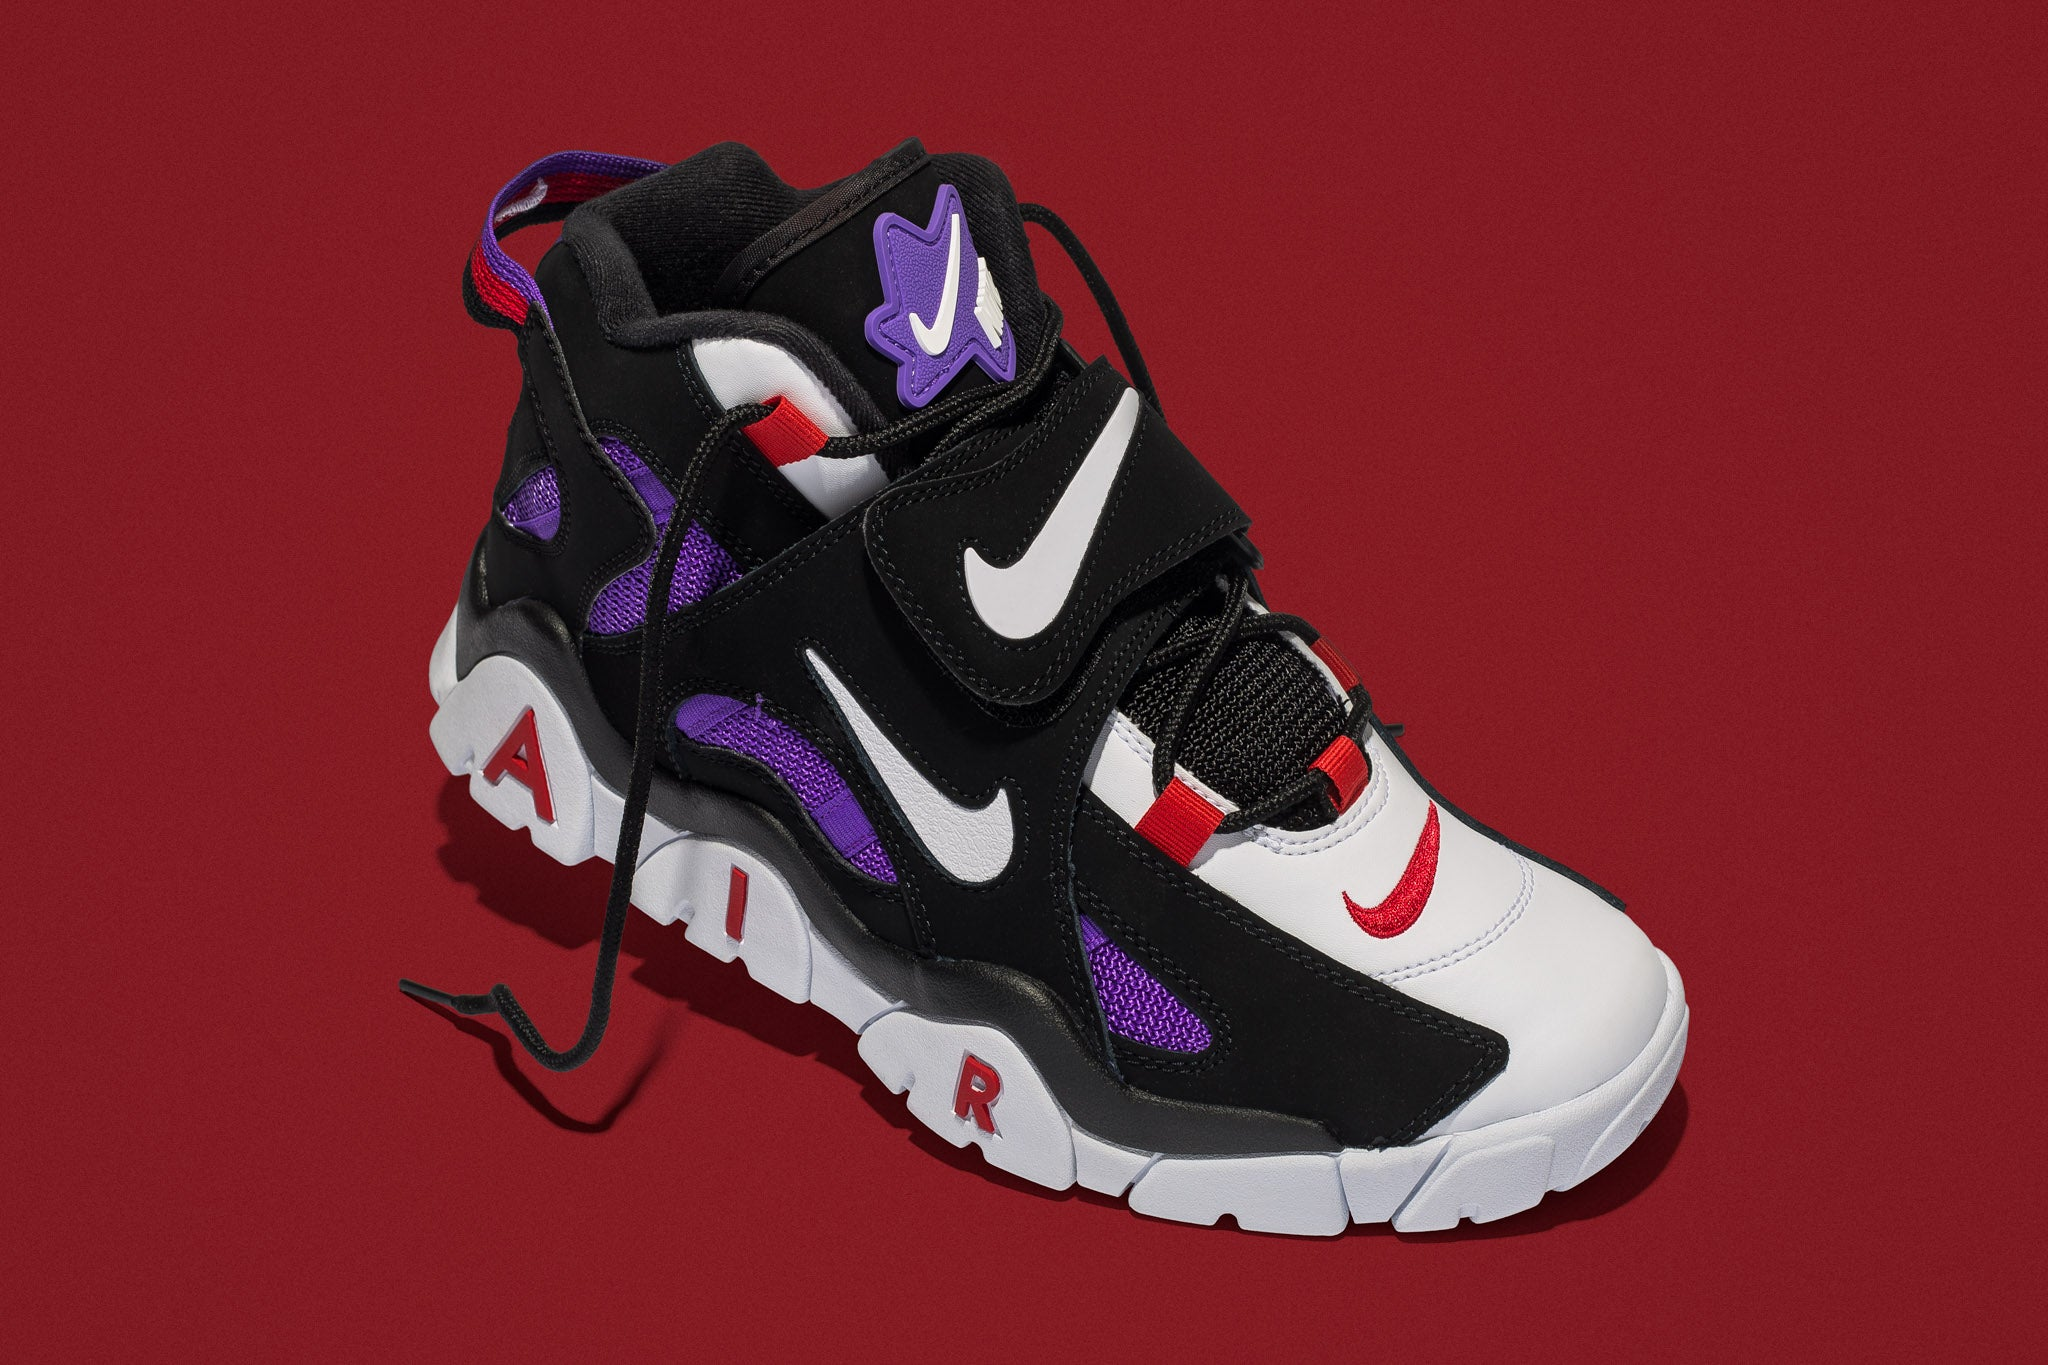 newest 76cc5 85906 Introduced as footwear targeted towards the NFL, the Nike Air Barrage Mid  QS shows similarities to the Air Max Uptempo with it s bulky yet  well-ventilated ...